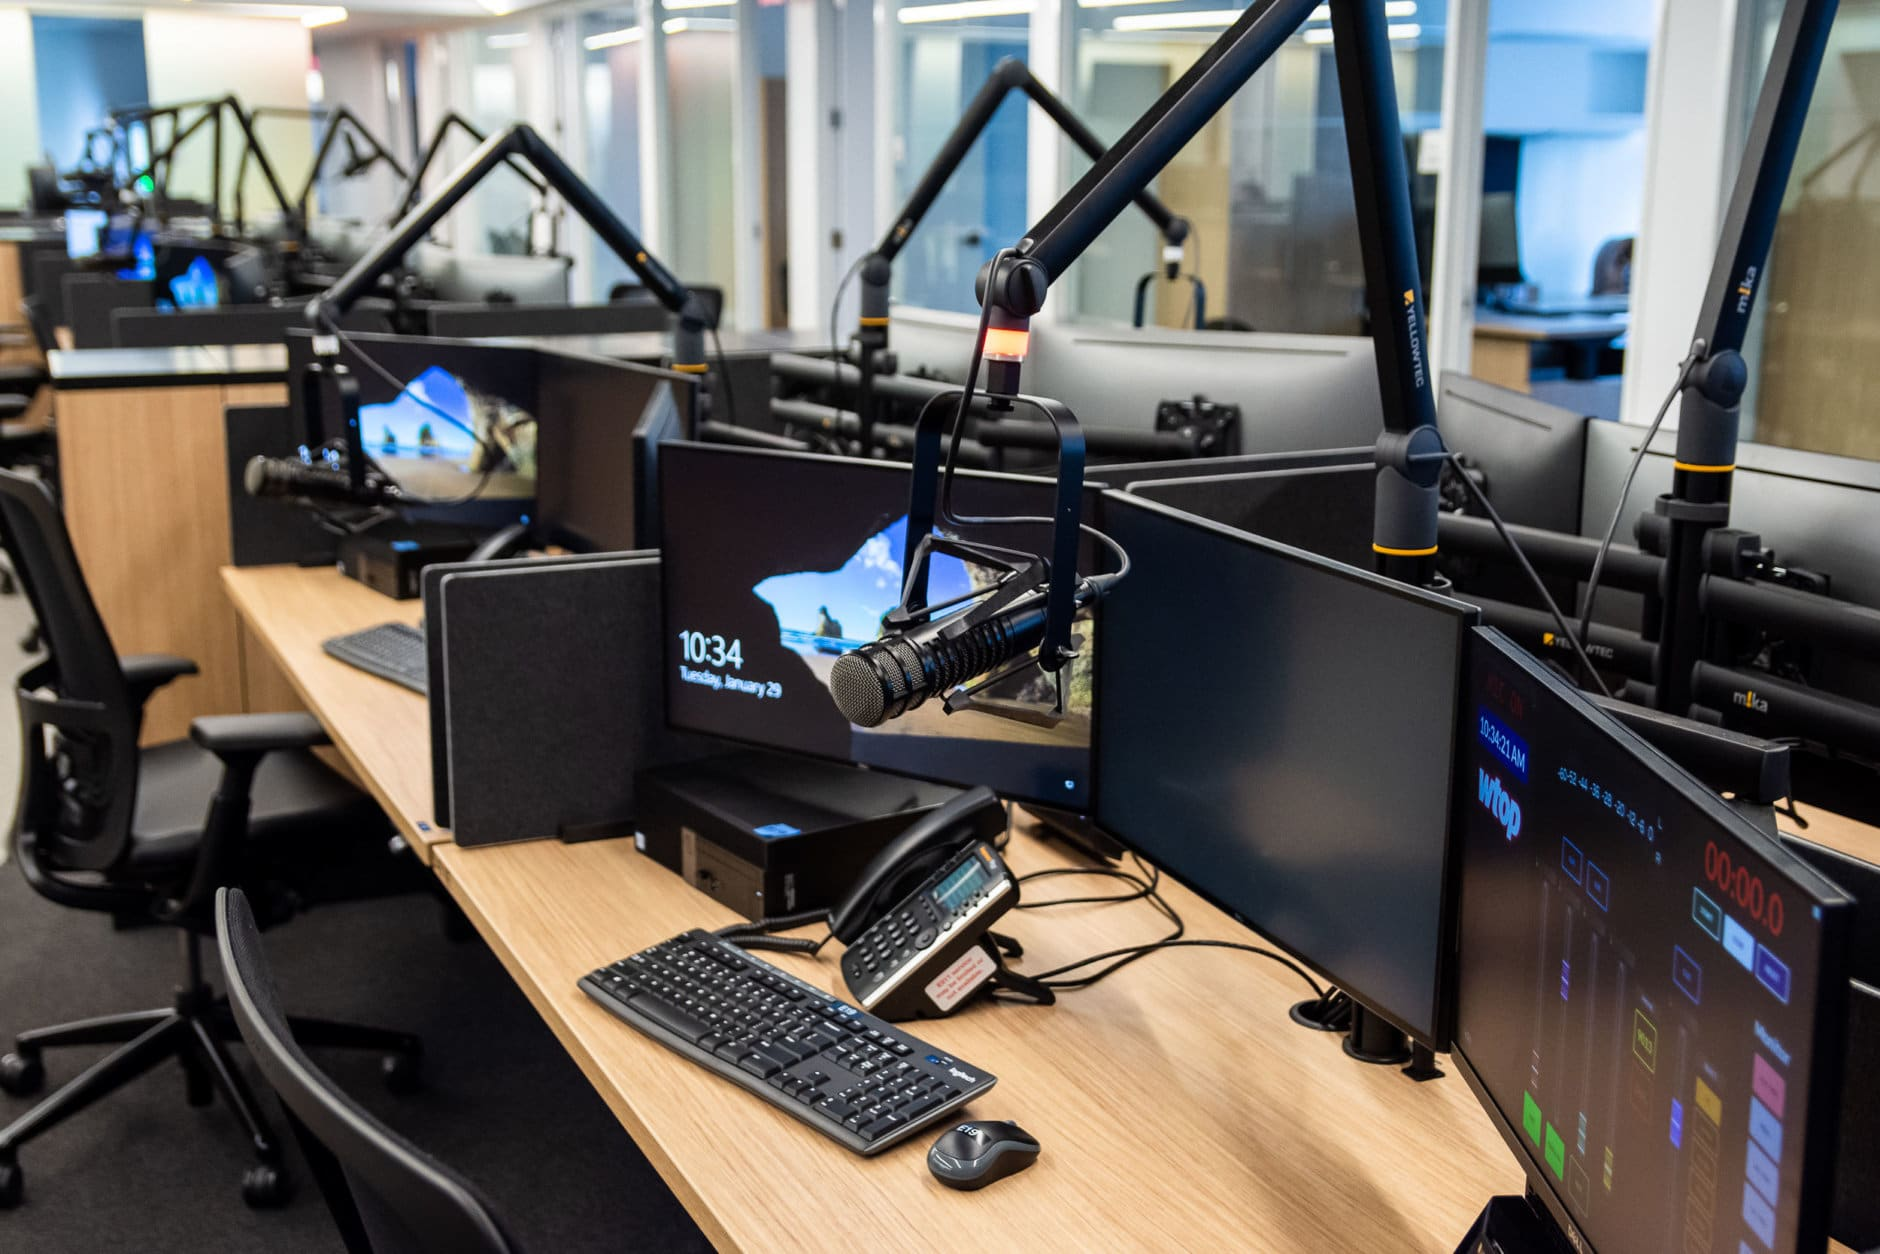 WTOP's new office space, shared with sister station Federal News Radio, is just under 31,000 square feet in an eight-story building just a short walk from the Friendship Heights Metro station in Maryland. The extra space allows for a whole array of new technology, including recording equipment at every station and larger screens for the digital team (pictured). Most work stations also have the ability to convert into standing desks with the push of a button. (WTOP/Alejandro Alvarez)